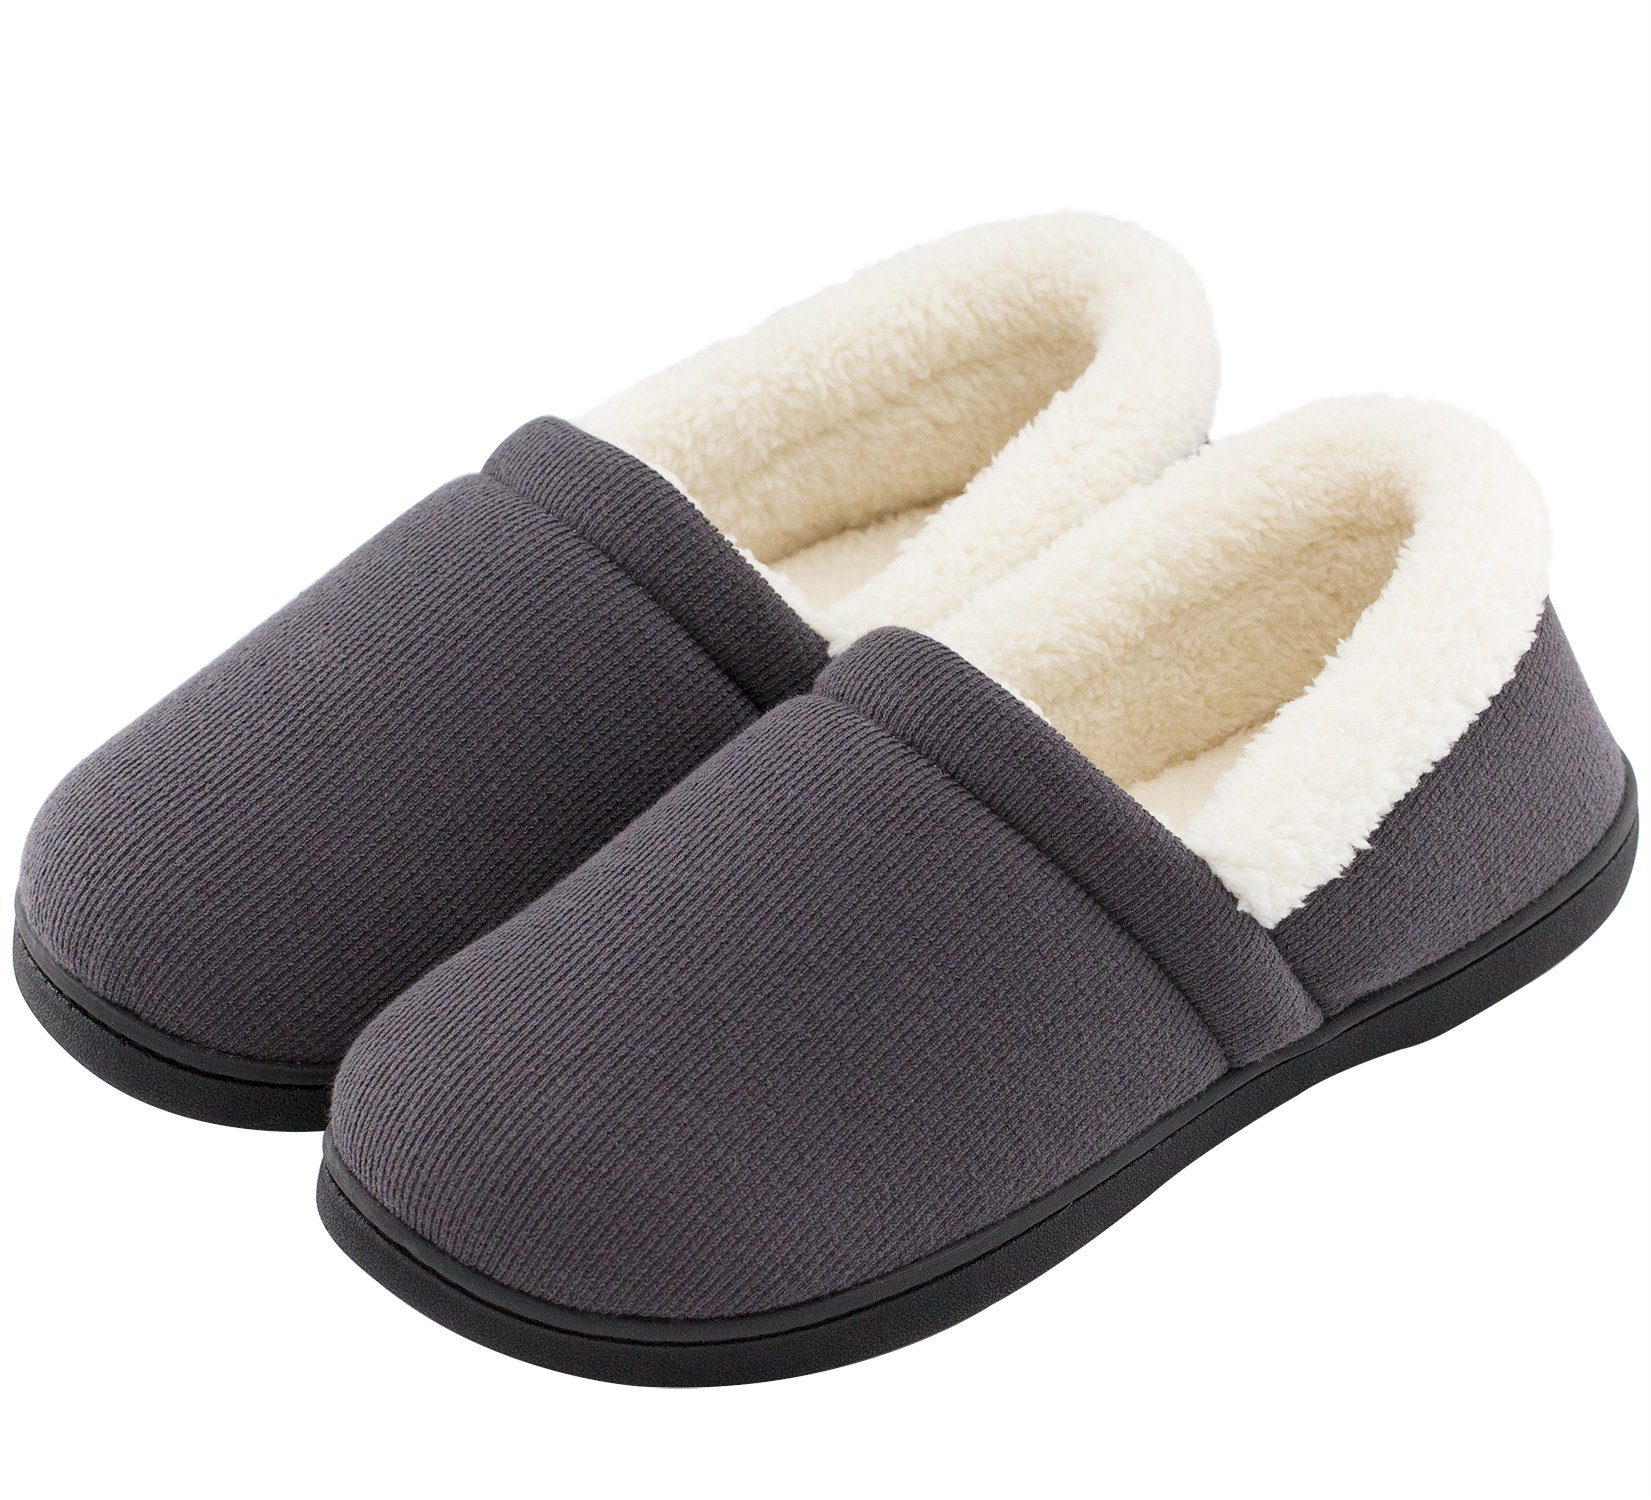 HomeTop Men's Comfy Fuzzy Knitted Cotton Memory Foam Indoor Outdoor House Shoes (US Men's 9-10, Gray)